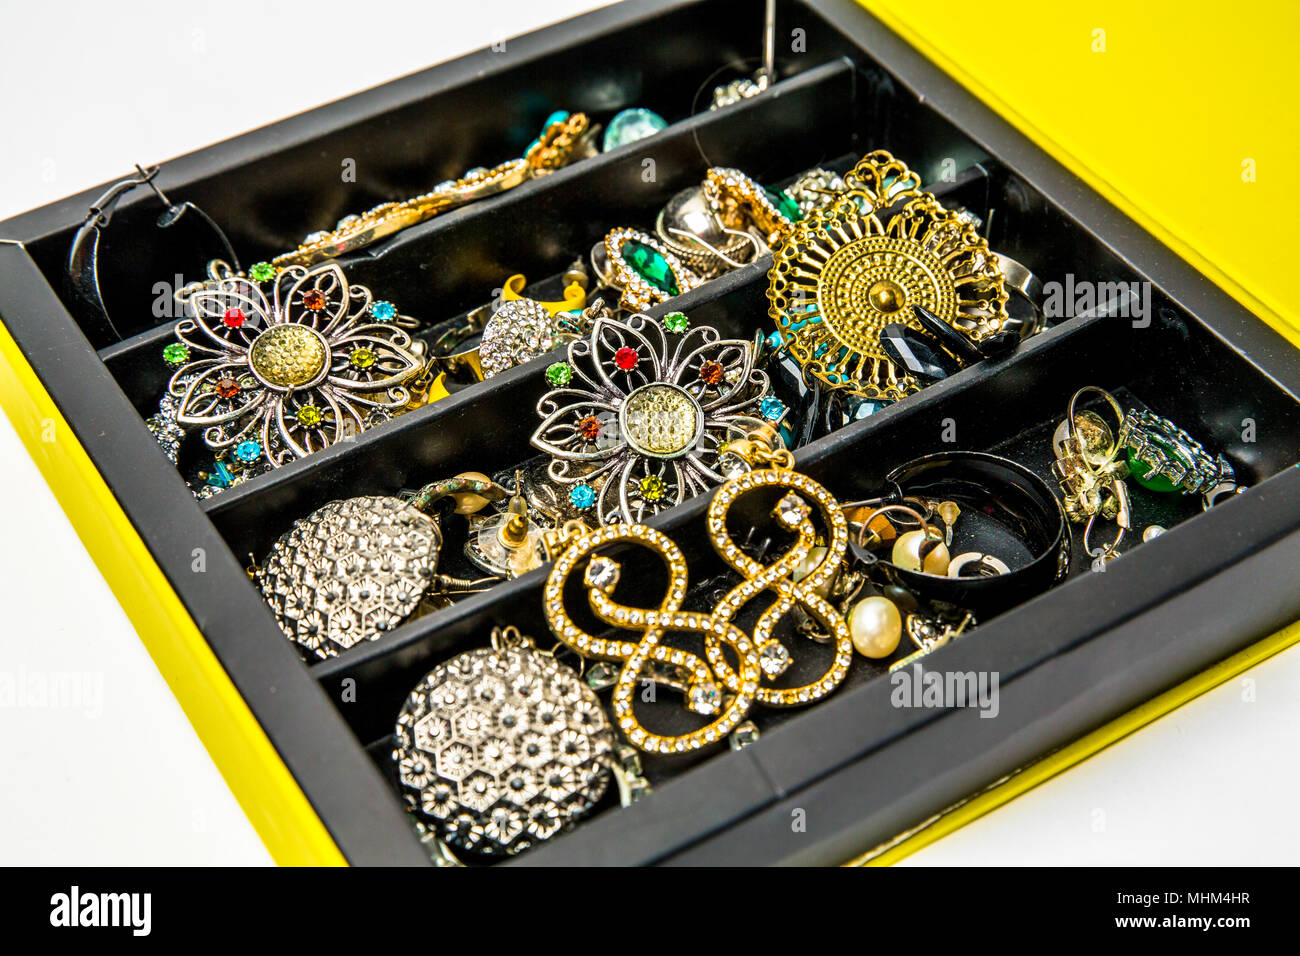 Jewel box with ornaments in white background - Stock Image